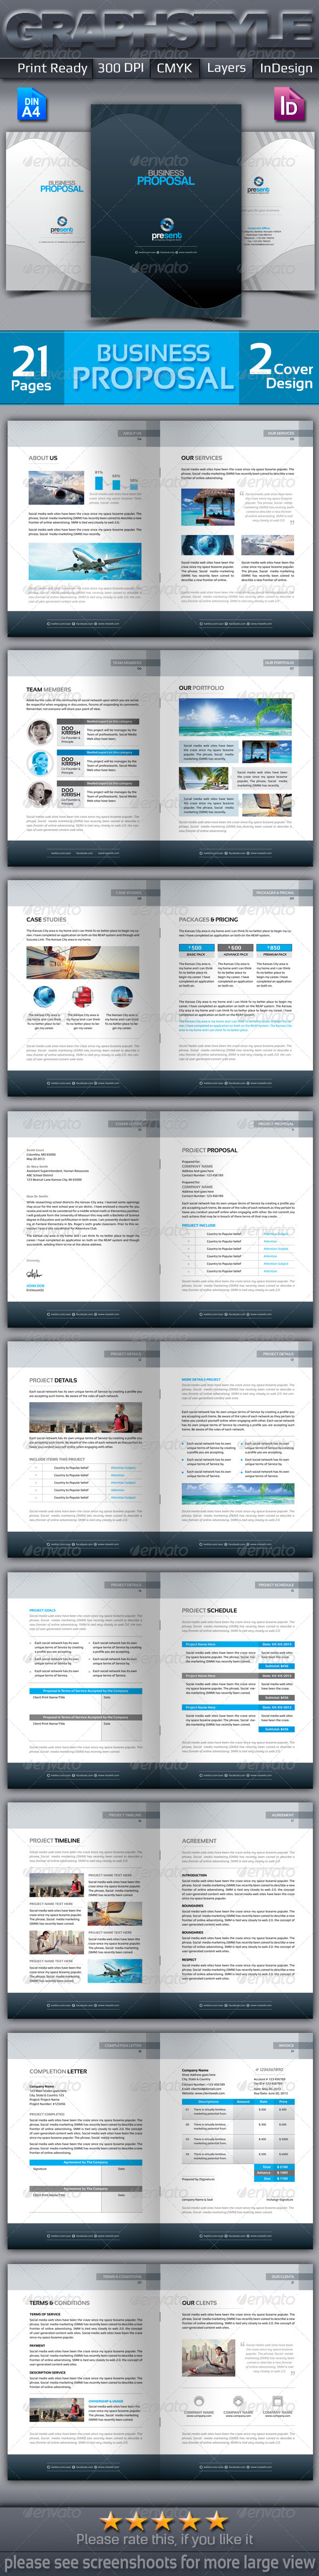 GraphicRiver Present Business Proposal 6785977